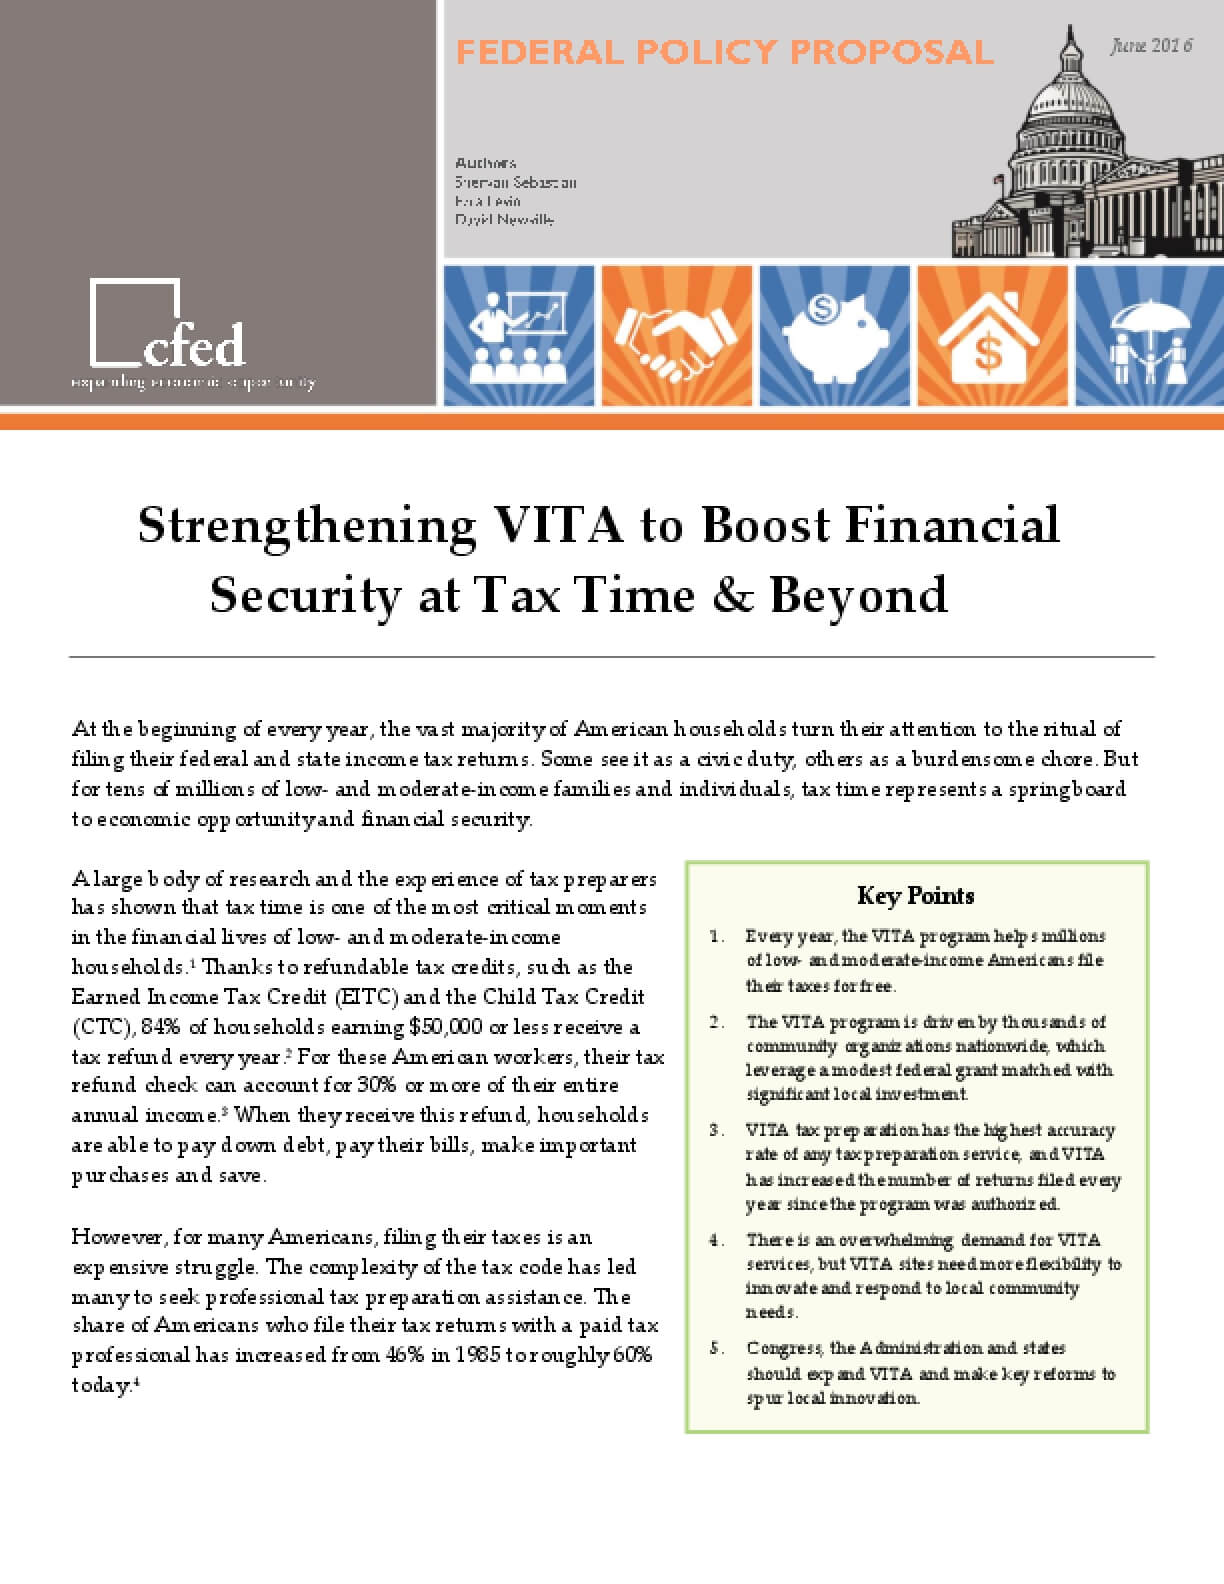 Strengthening VITA to Boost Financial Security at Tax Time and Beyond